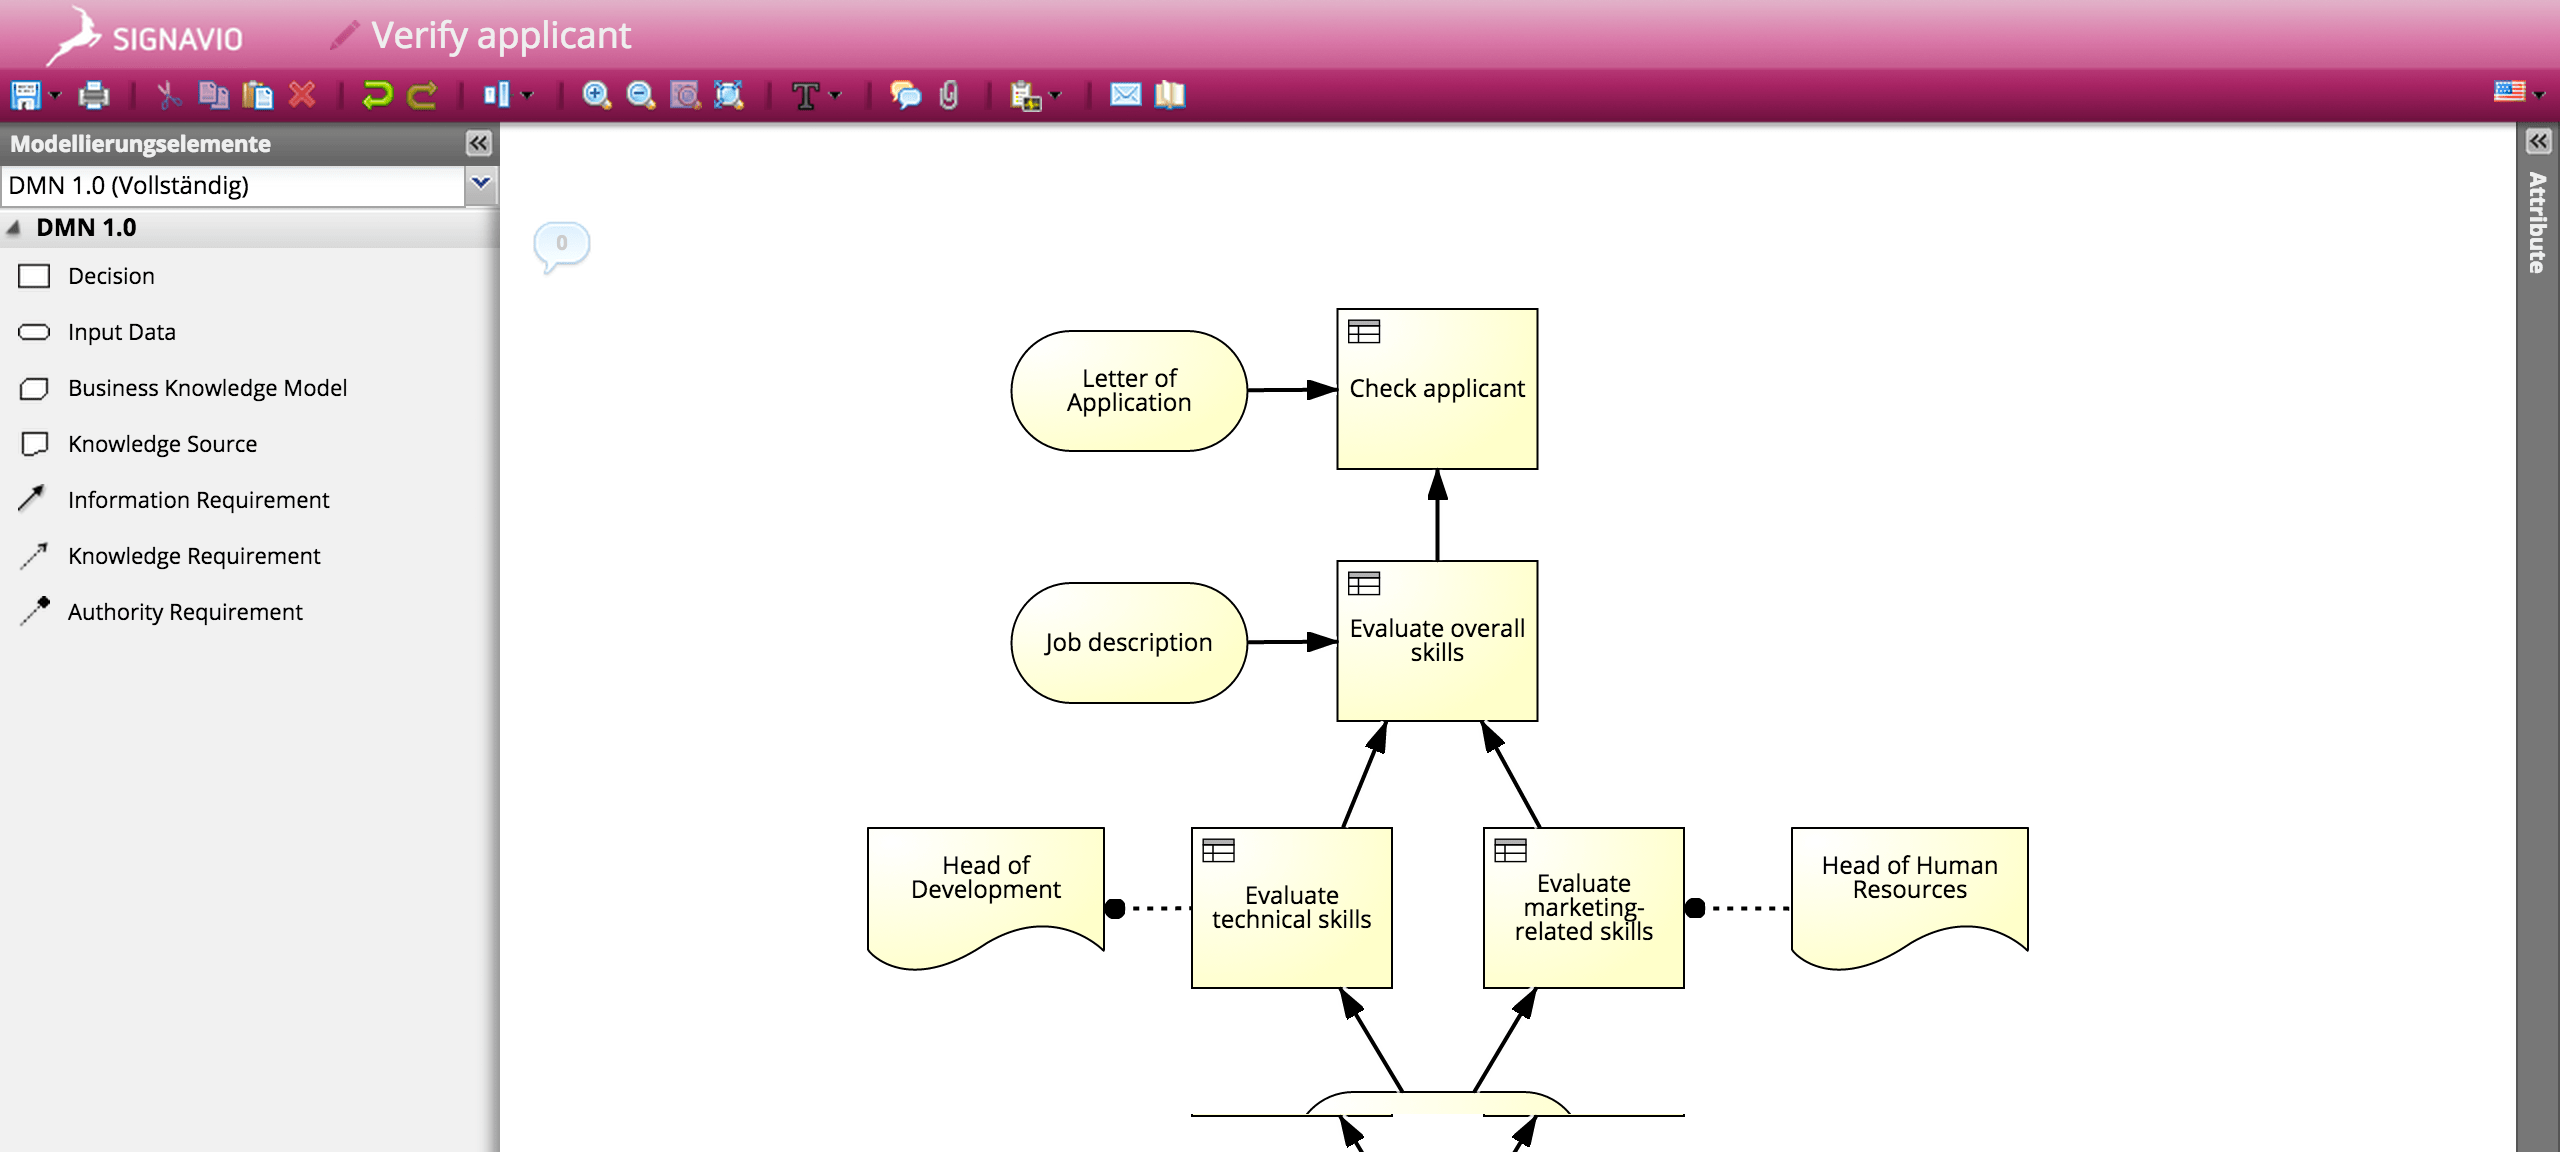 DMN Requirements Diagrams (DRD) -Signavio Decision Manager- Screenshot